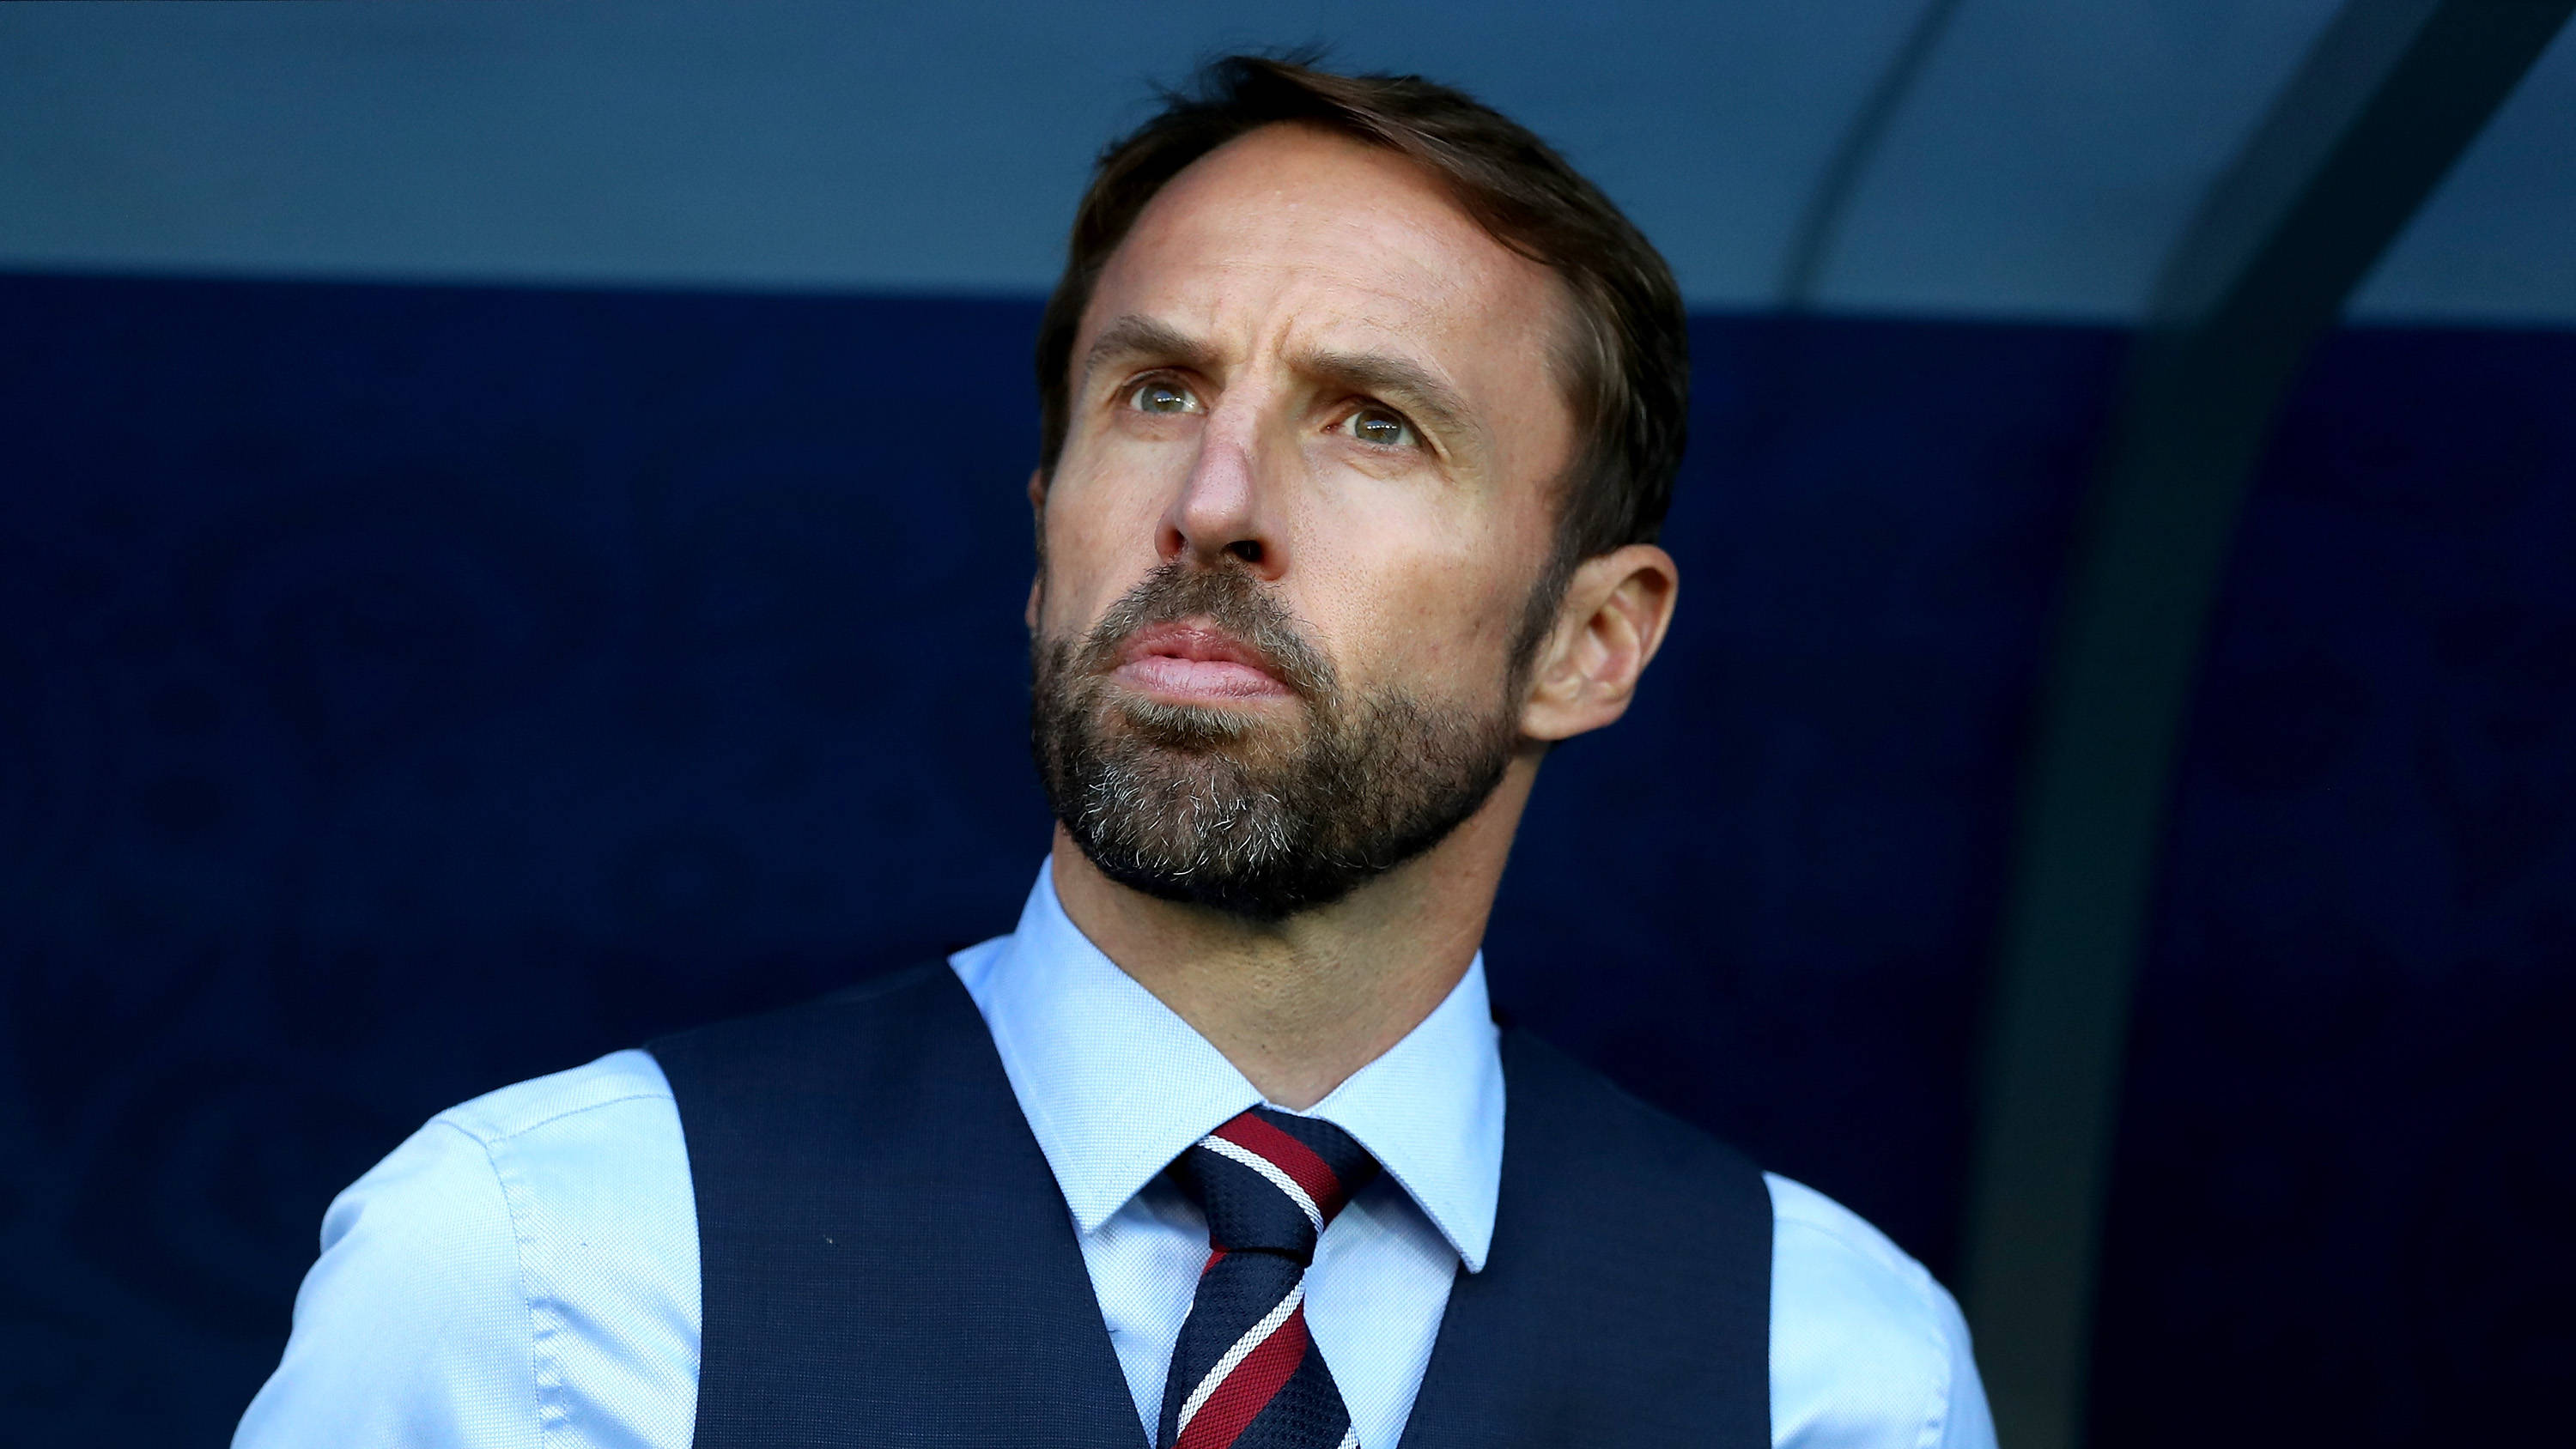 England Manager Gareth Southgate Dismisses Fashion Icon Role Smooth